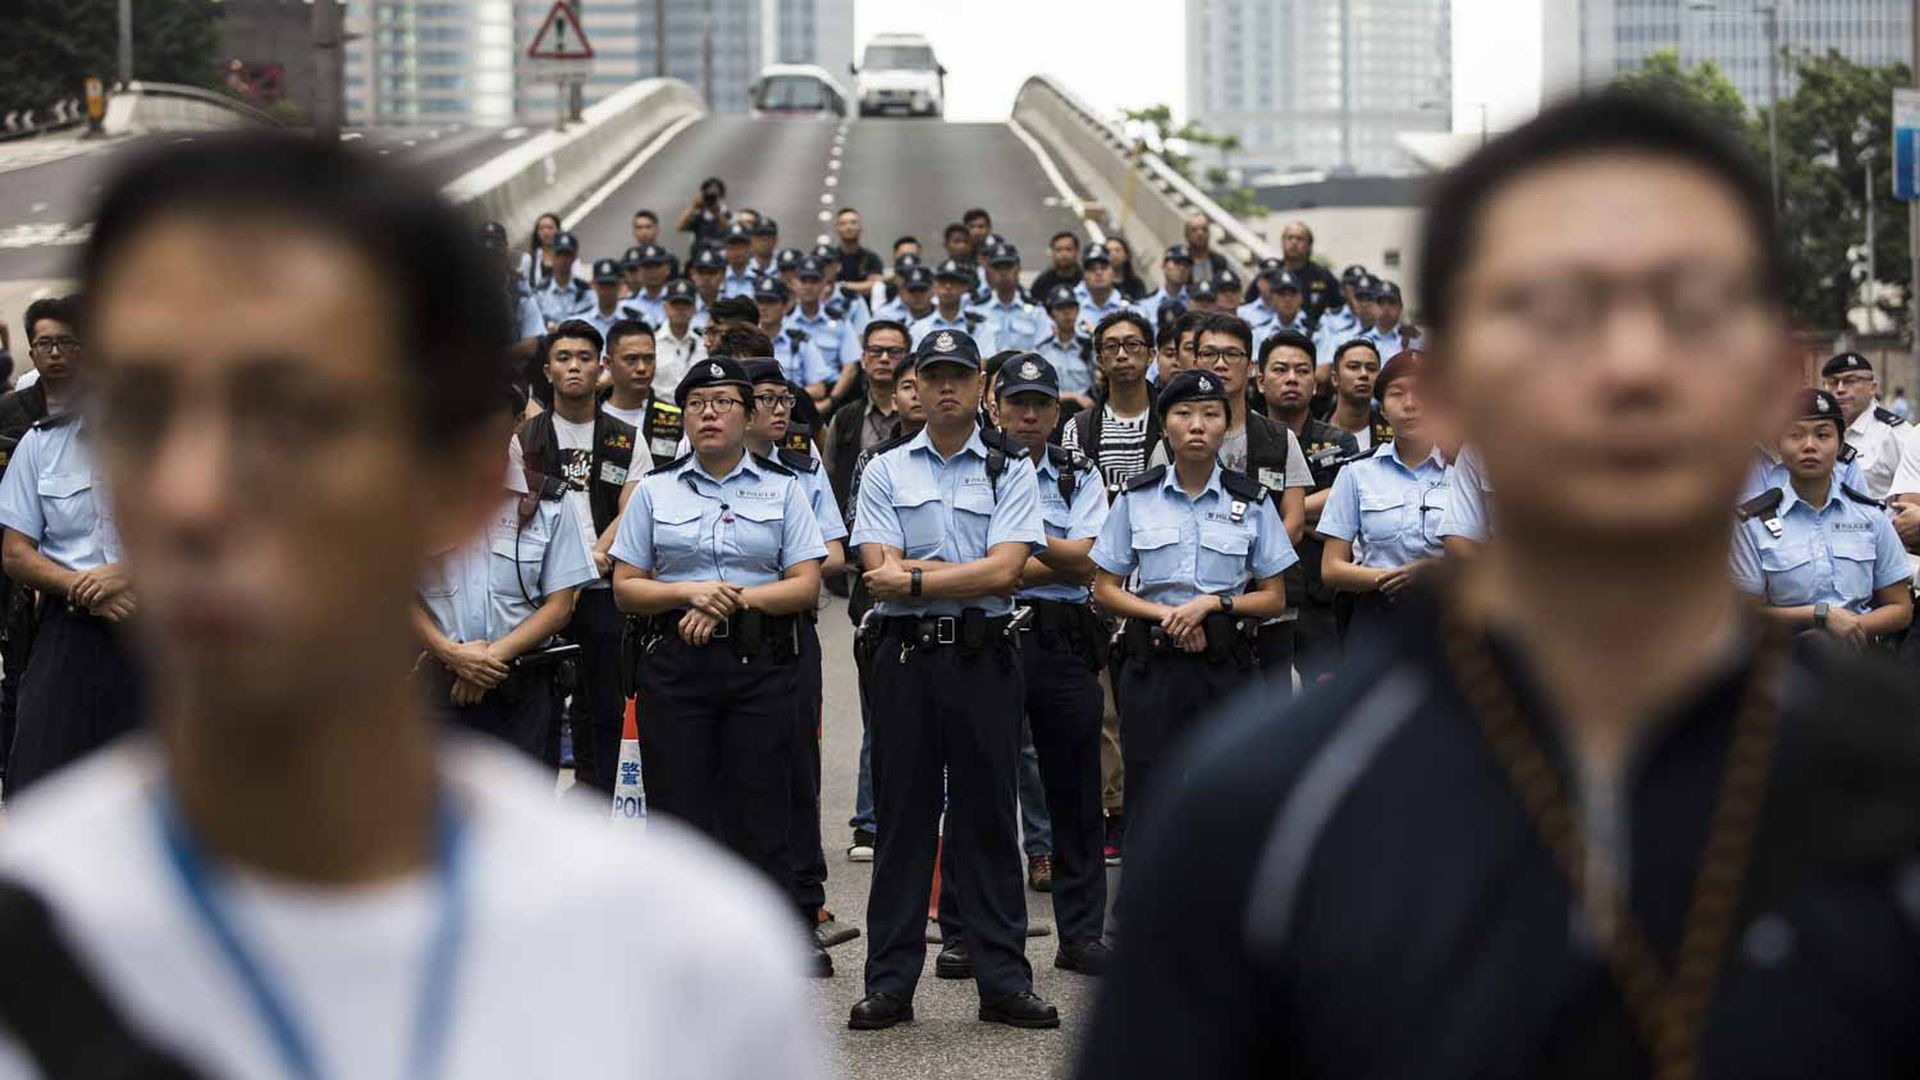 Police clear Hong Kong's streets.